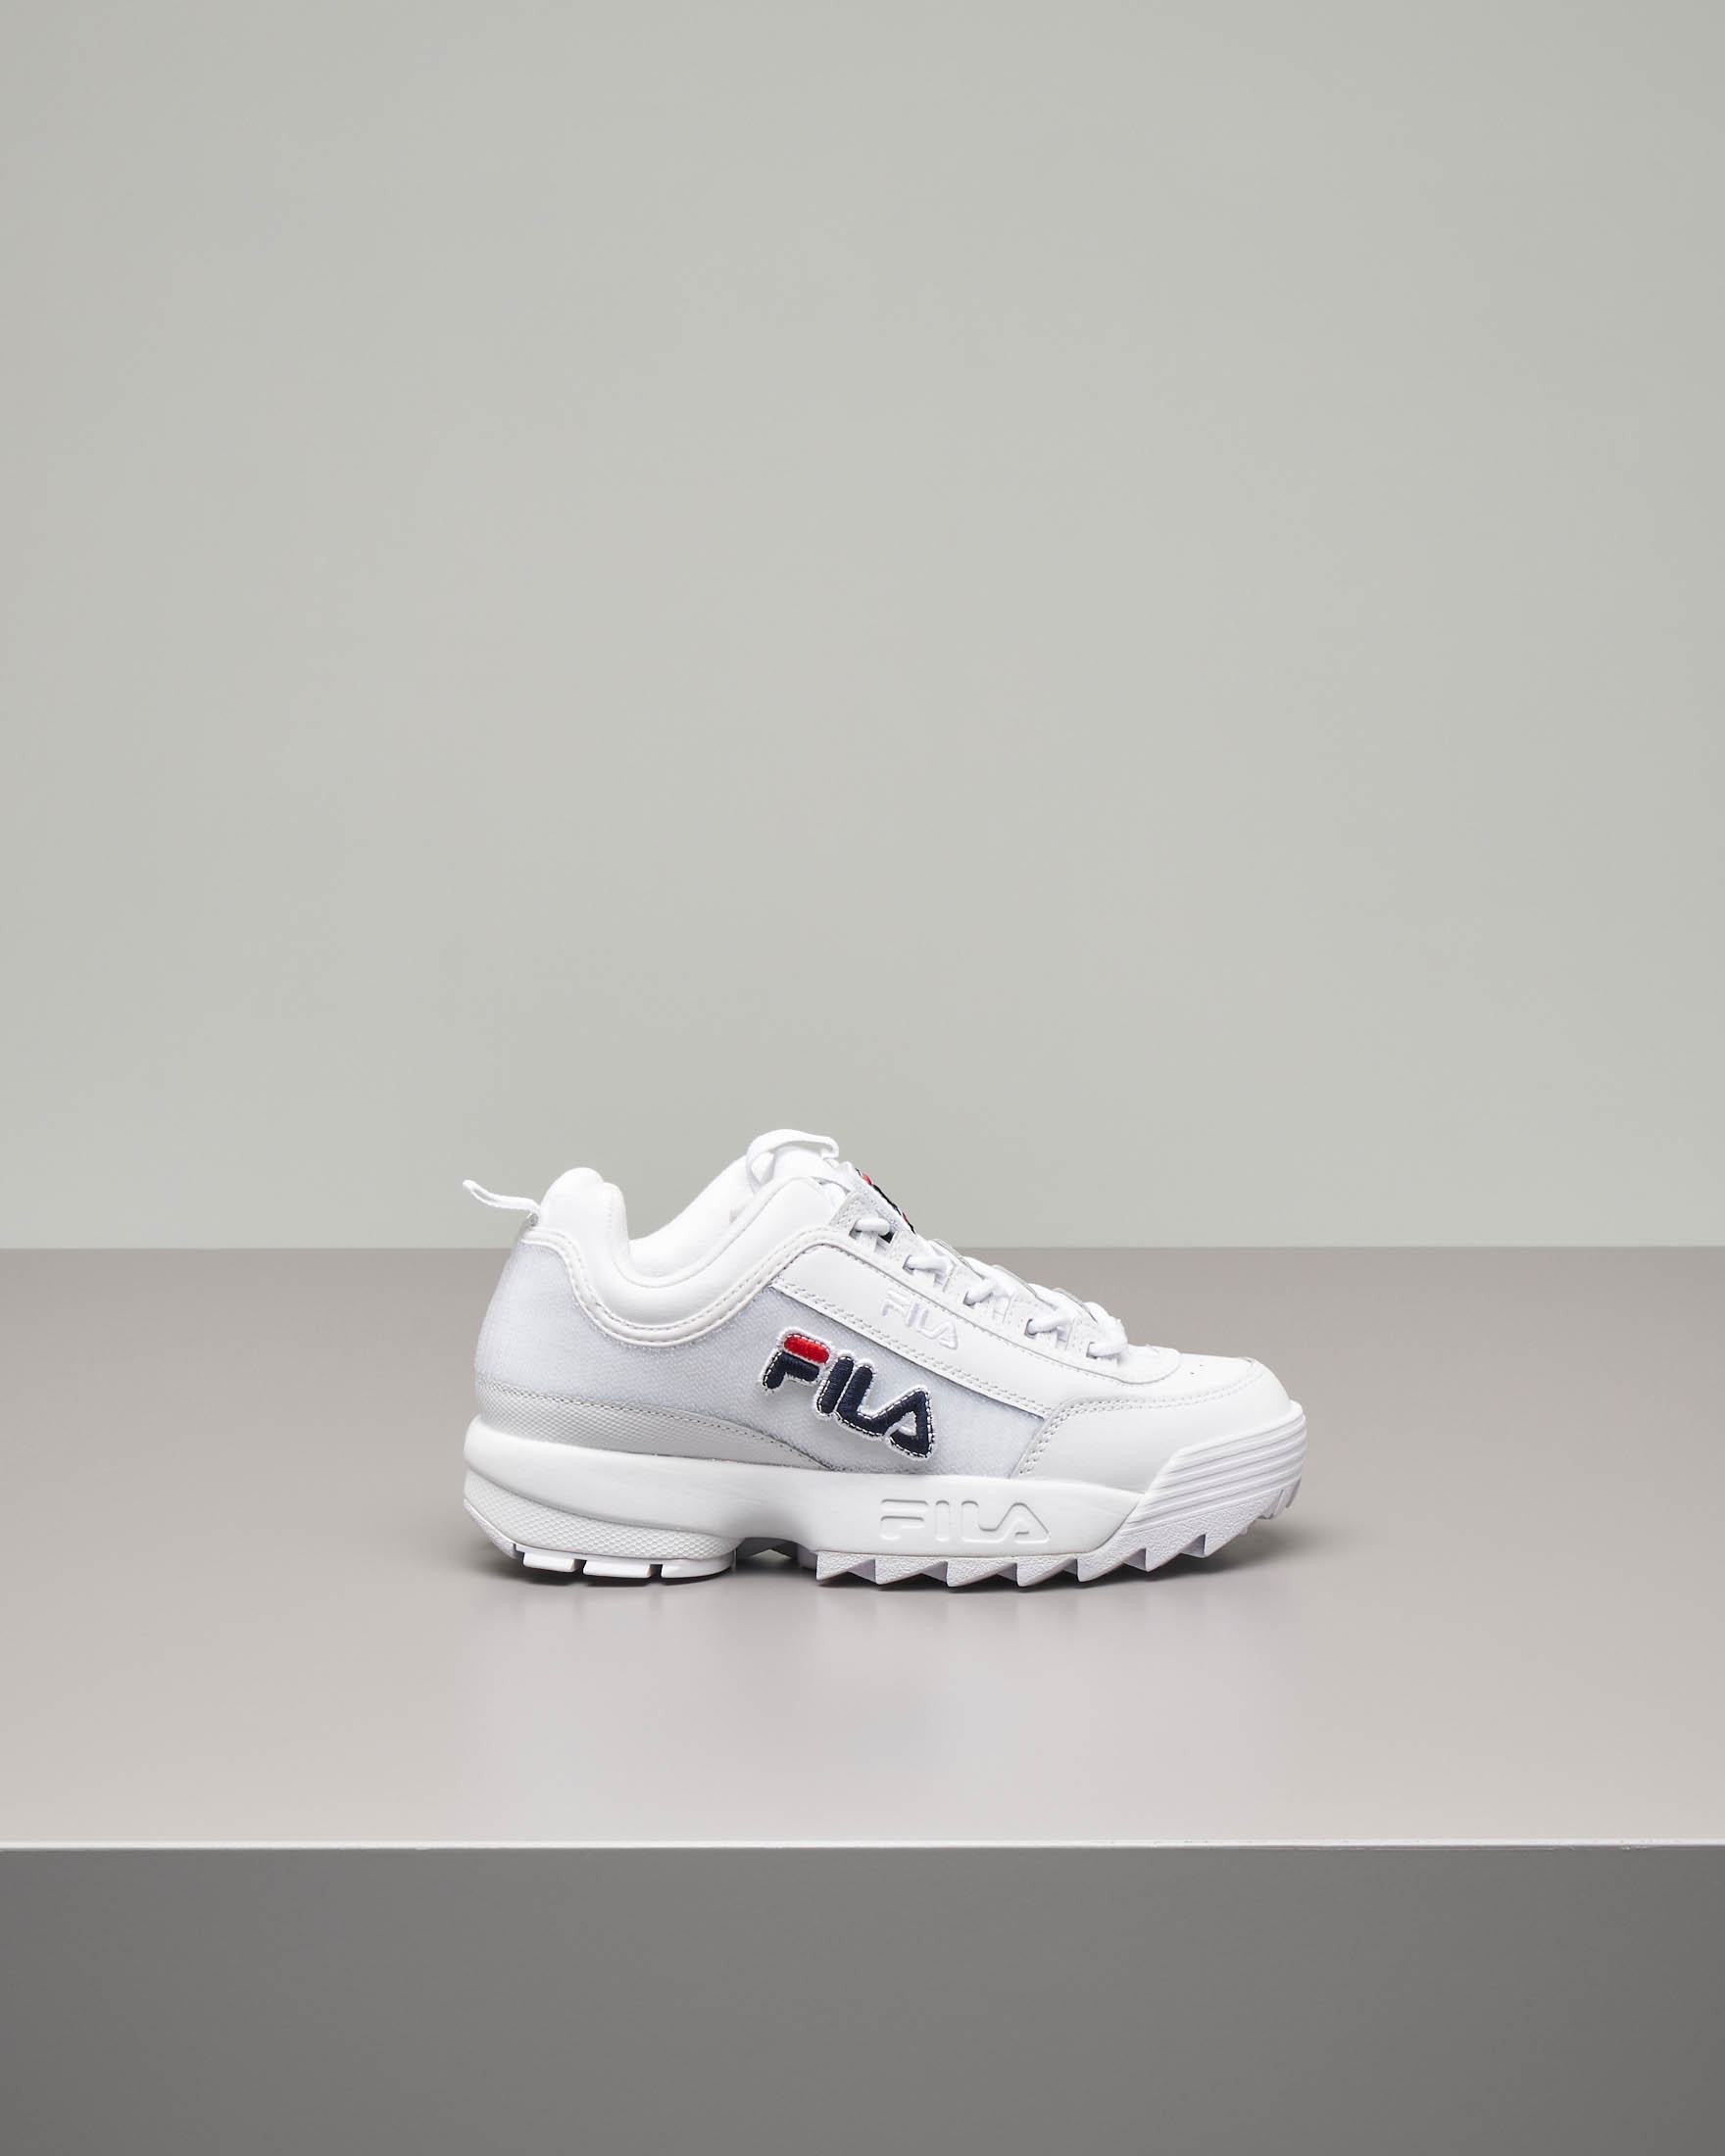 Sneaker Fila Disruptor bianca con patches